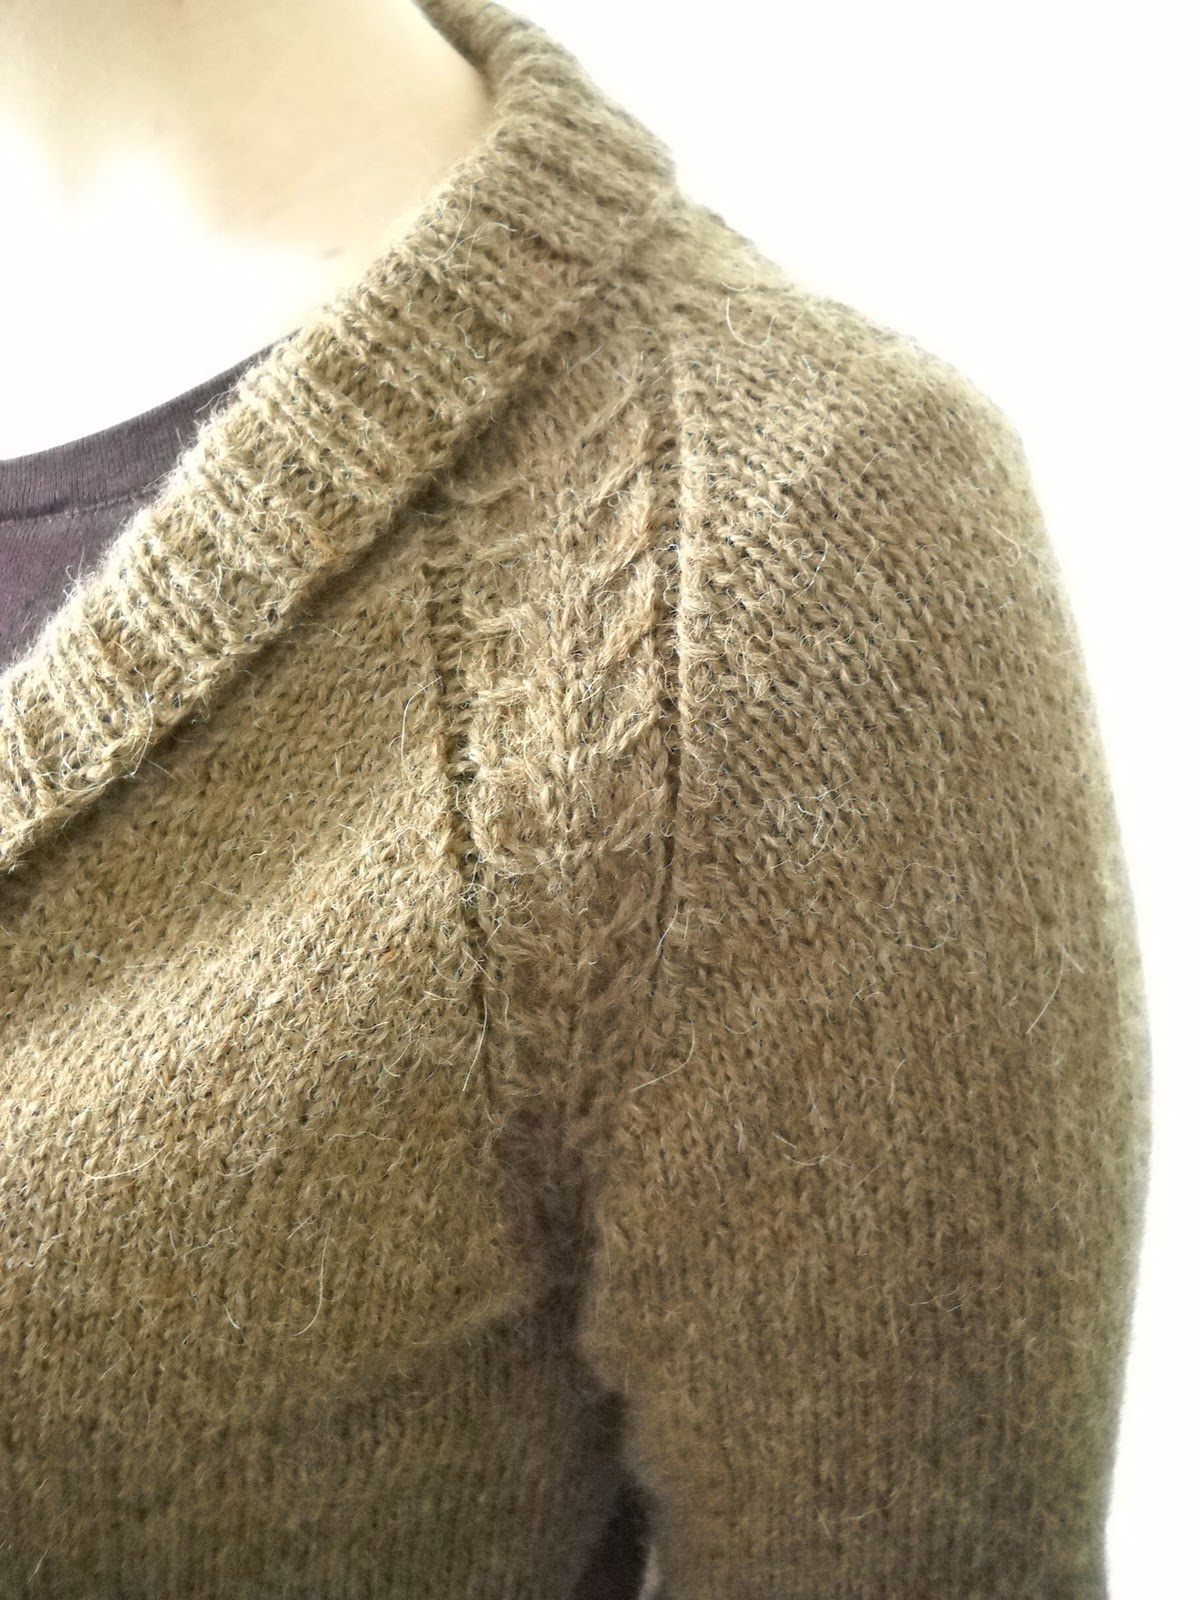 Knitting Joining Raglan Seams : Tinks and frogs just what i wanted